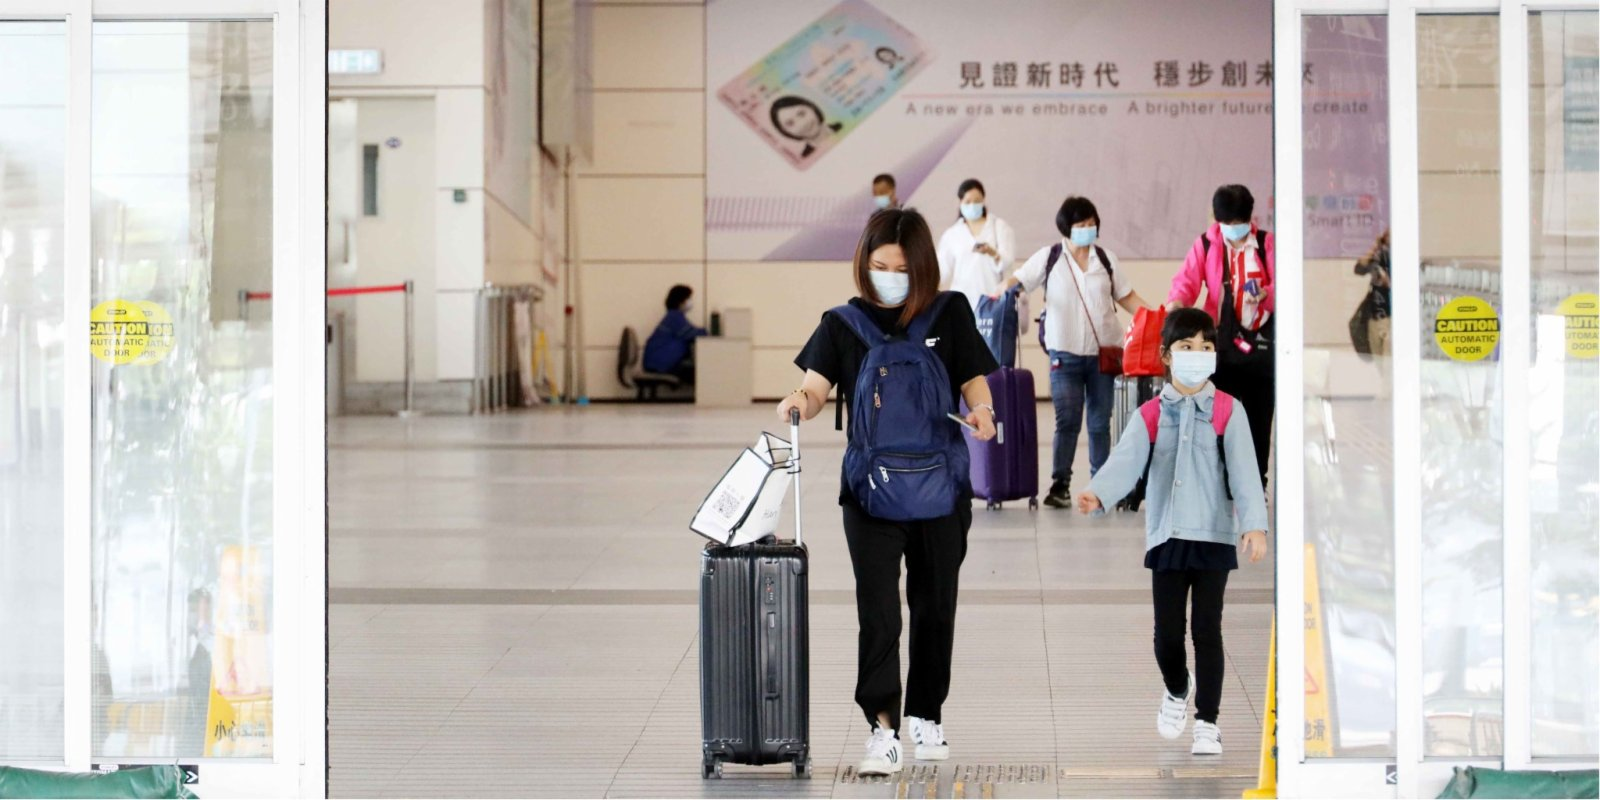 Come2hk Scheme: Over 300 people arrived in HK on 1st day